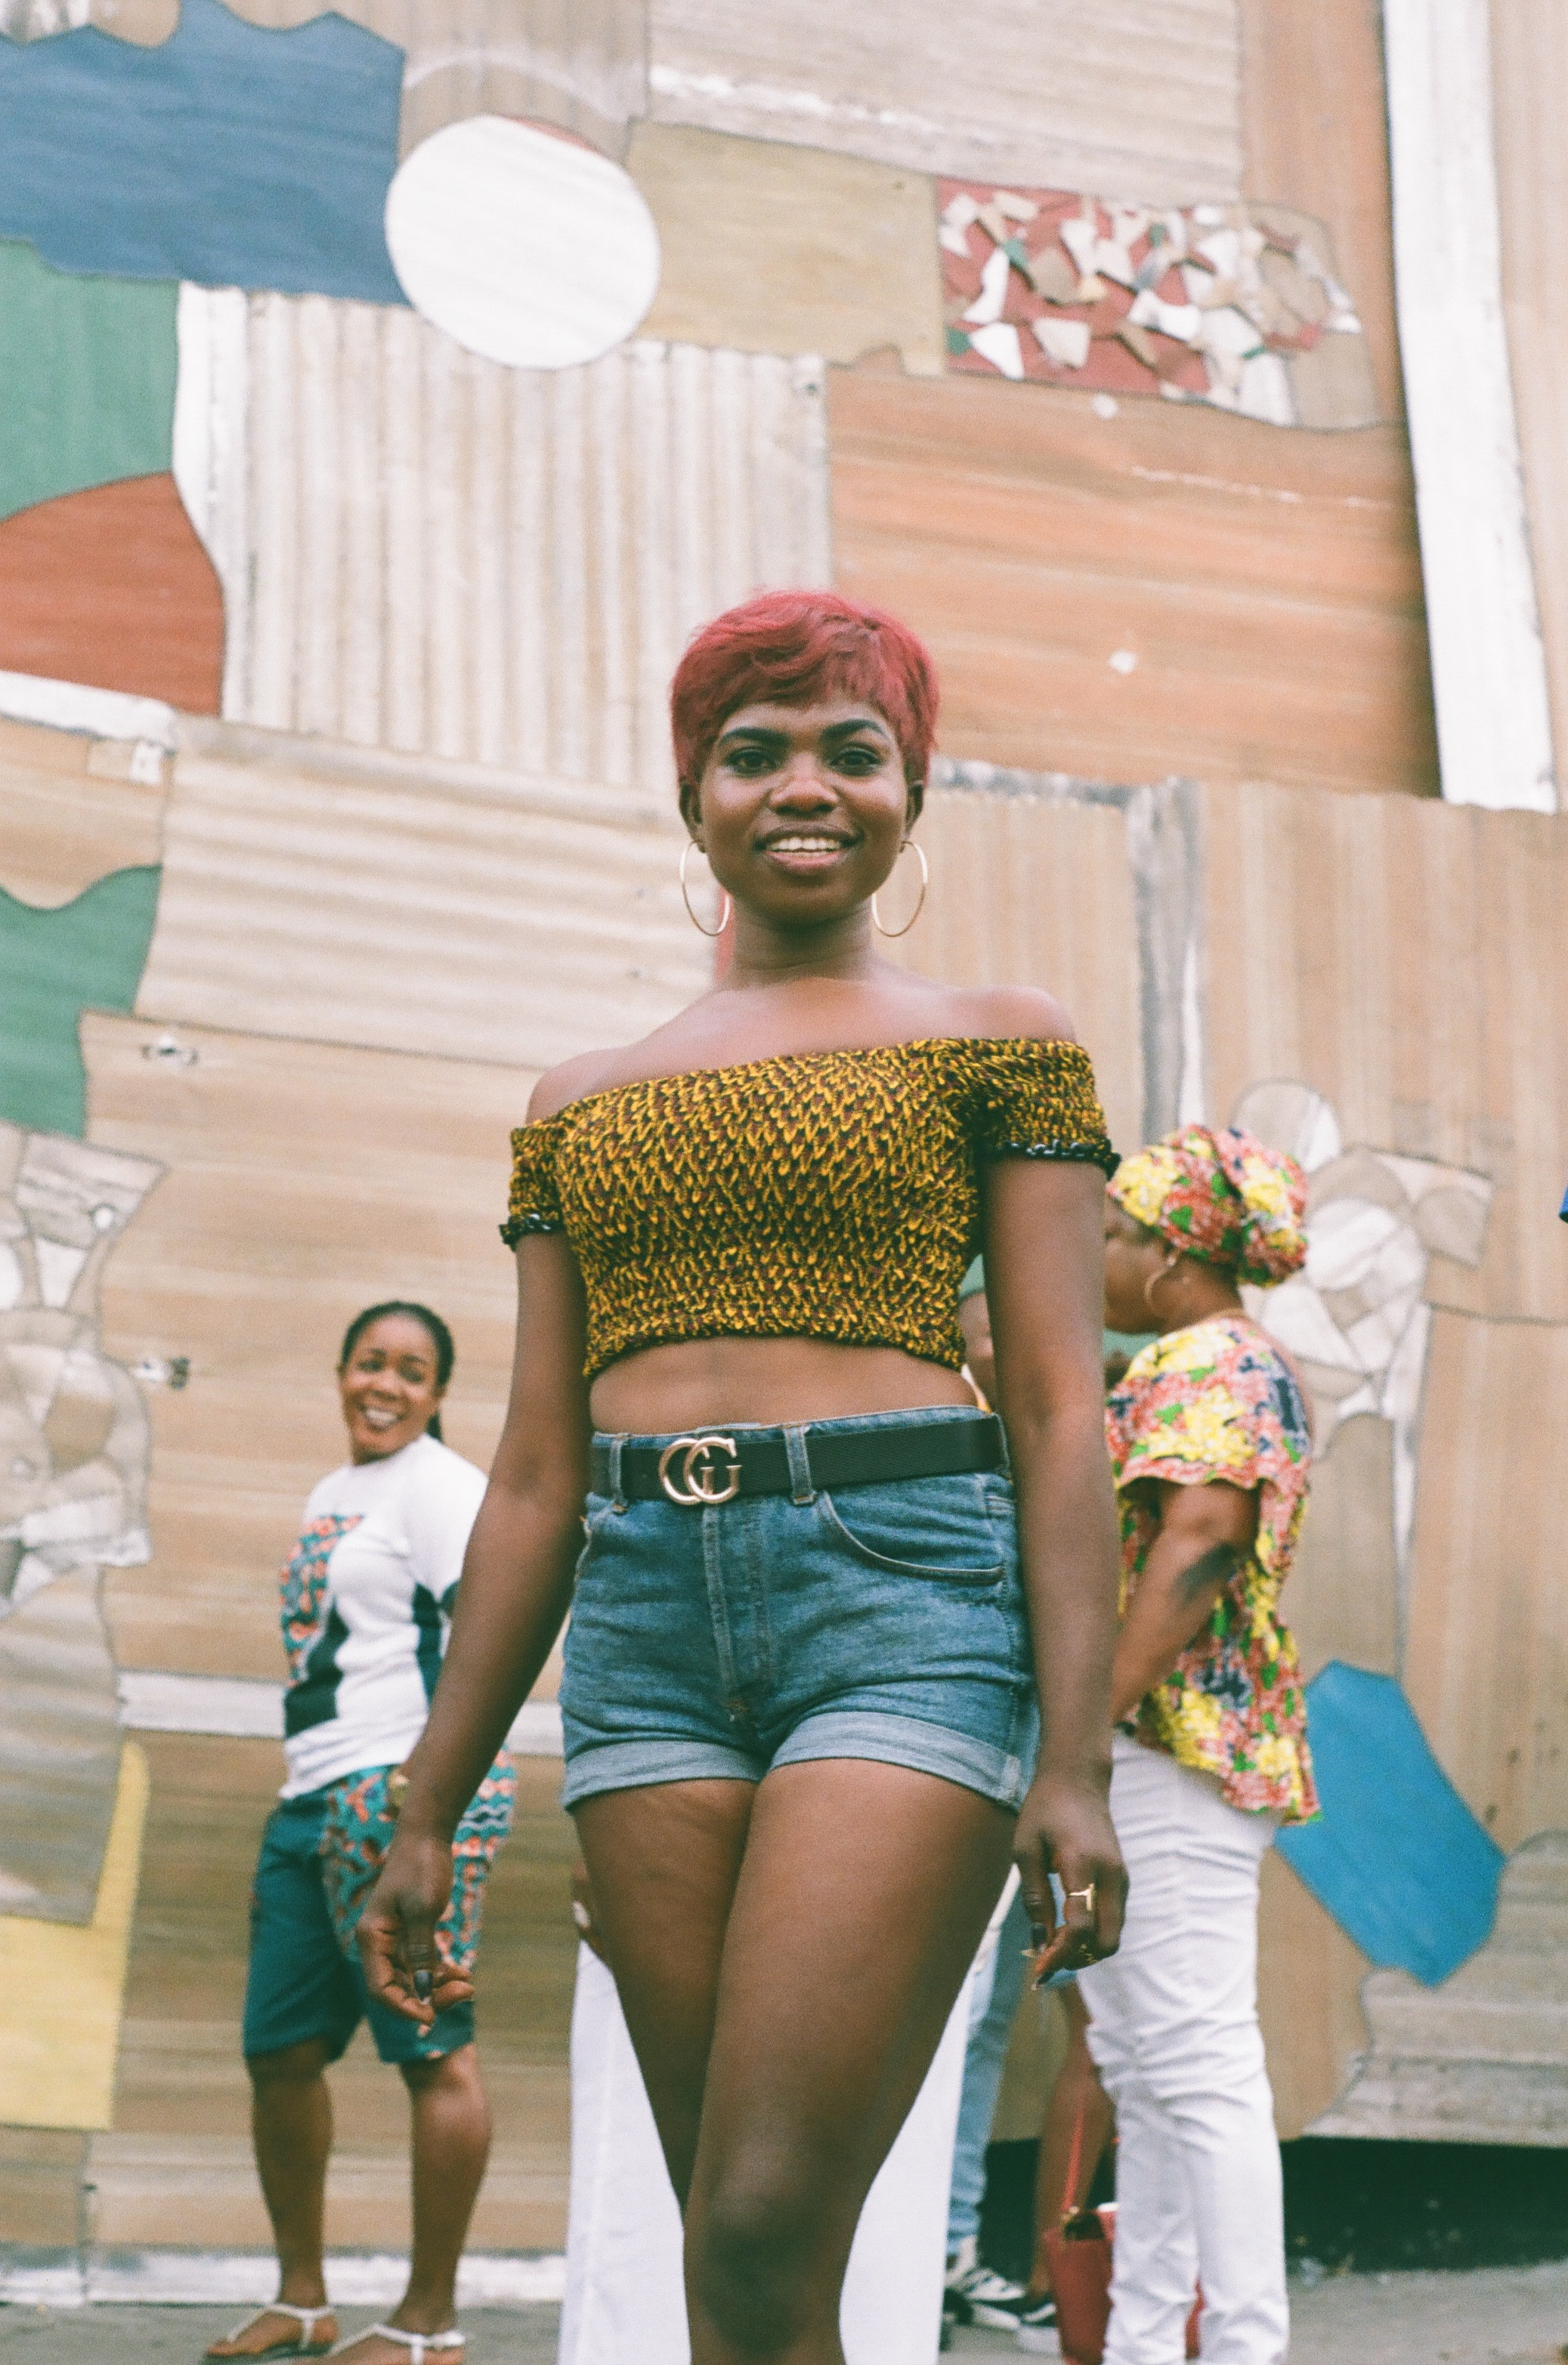 Tessy, a festival goer with impeccable style